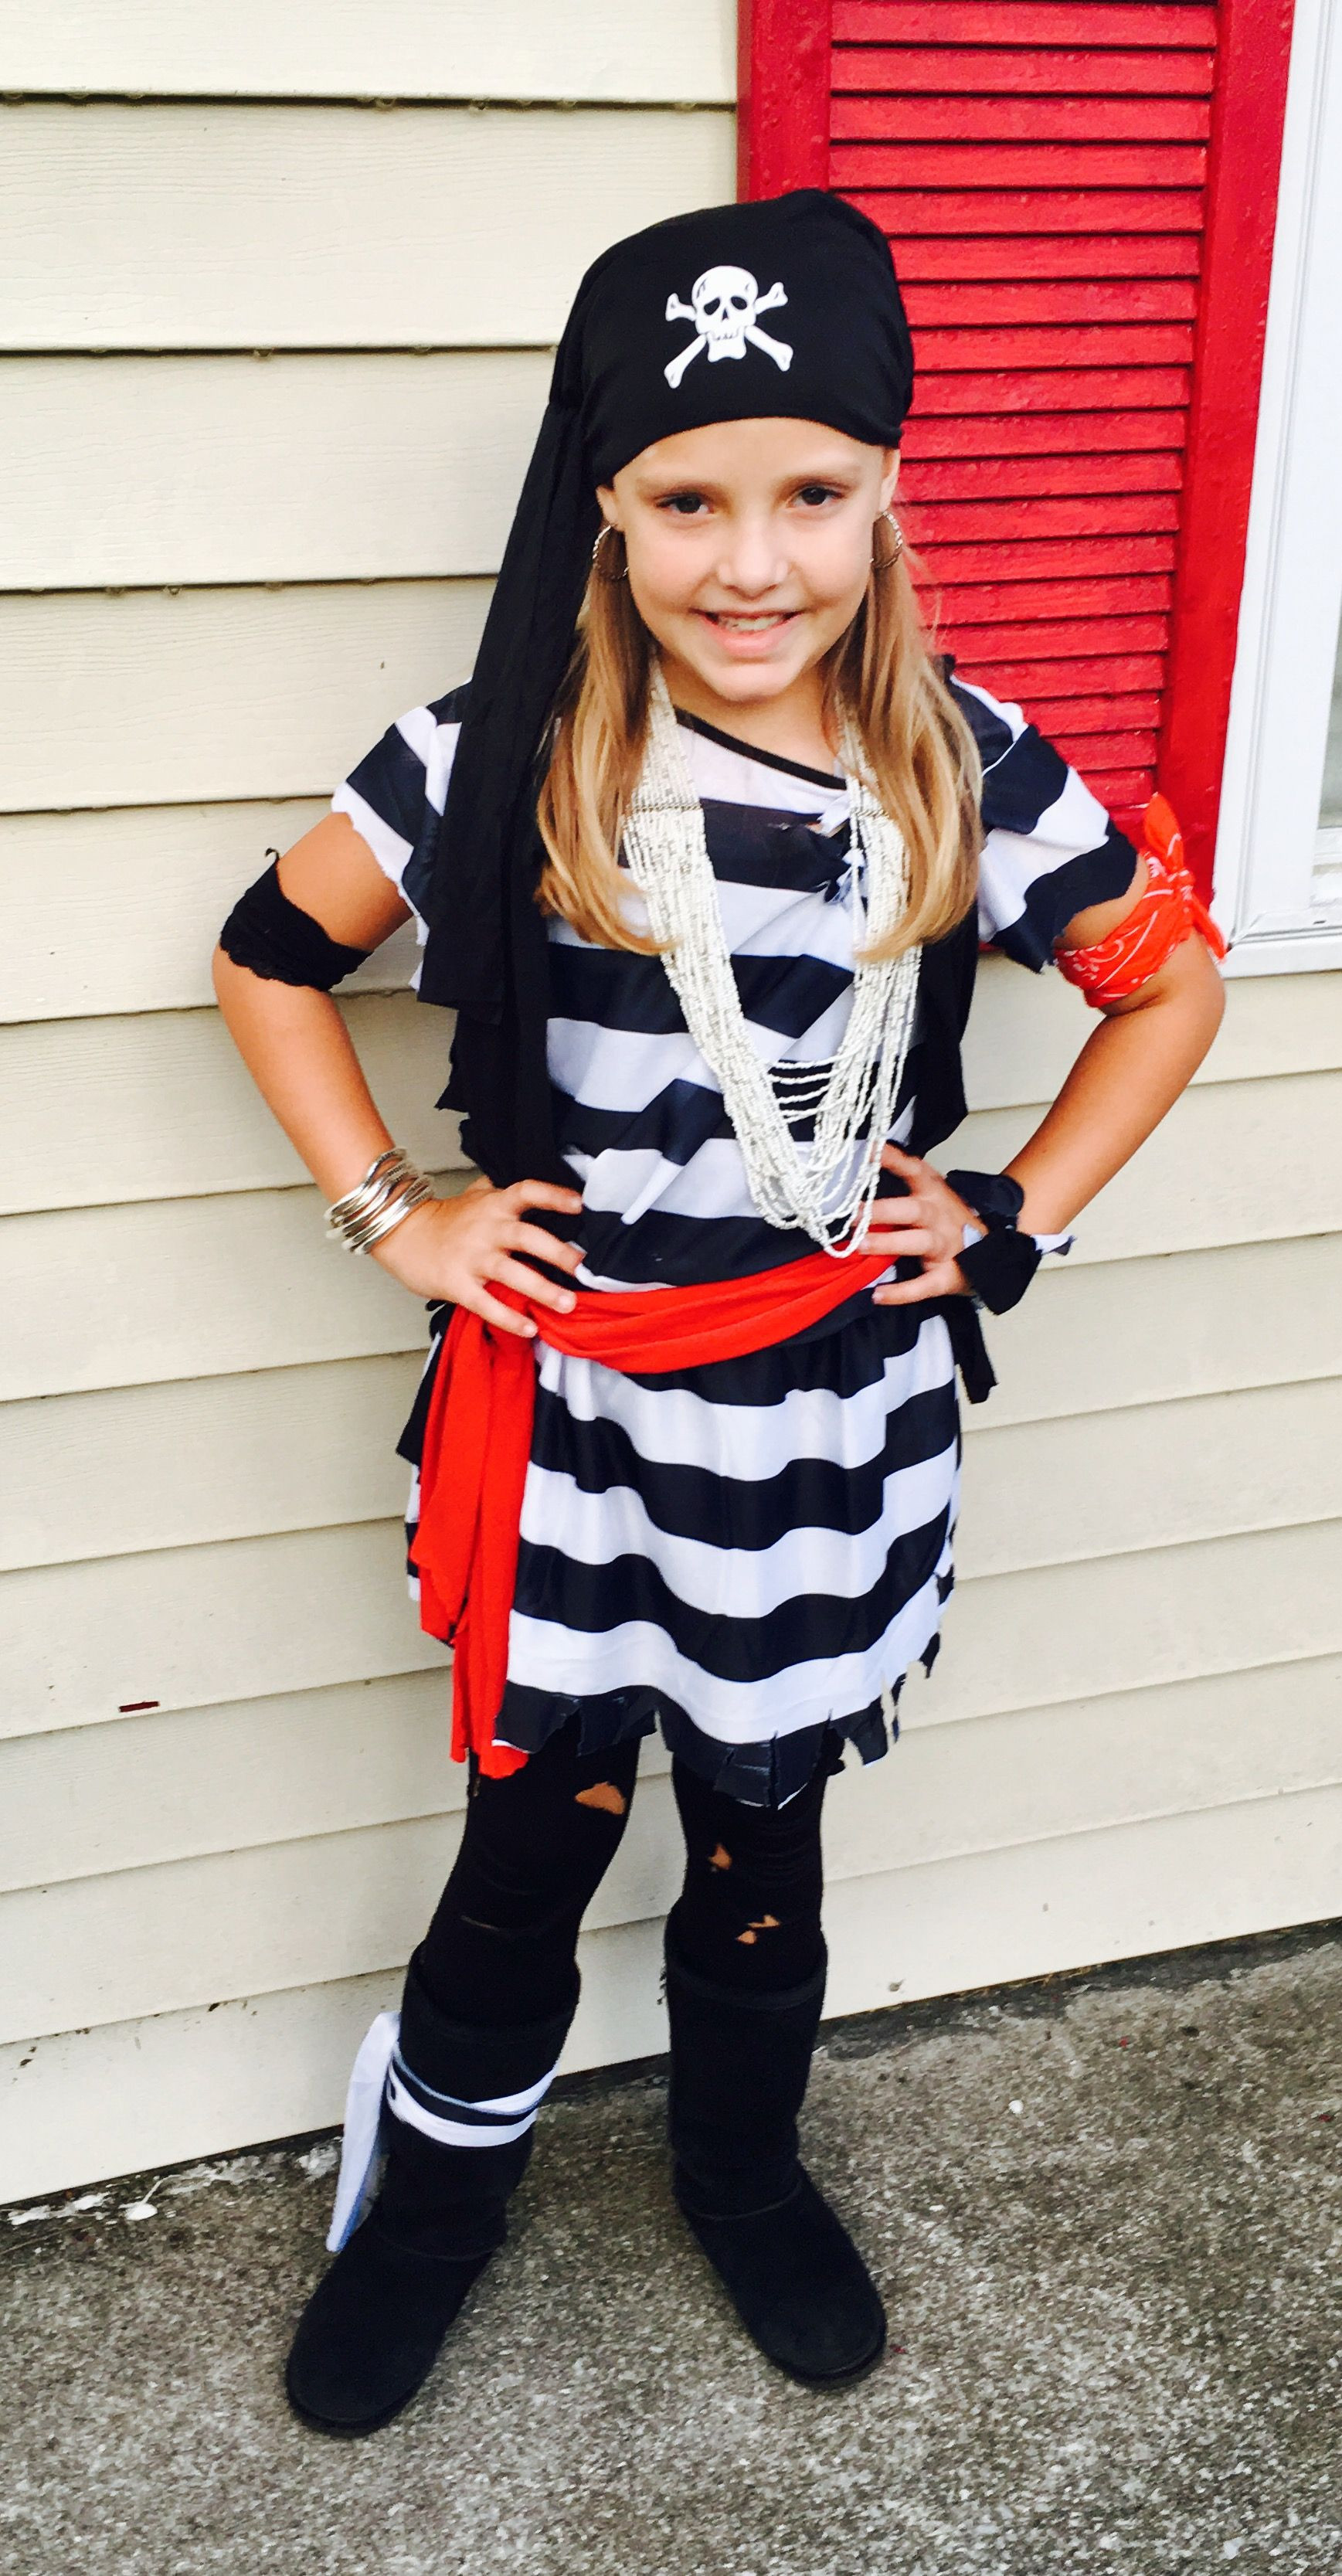 Best ideas about DIY Prisoner Costume . Save or Pin Easy girl s pirate costume made from cheap adult size Now.